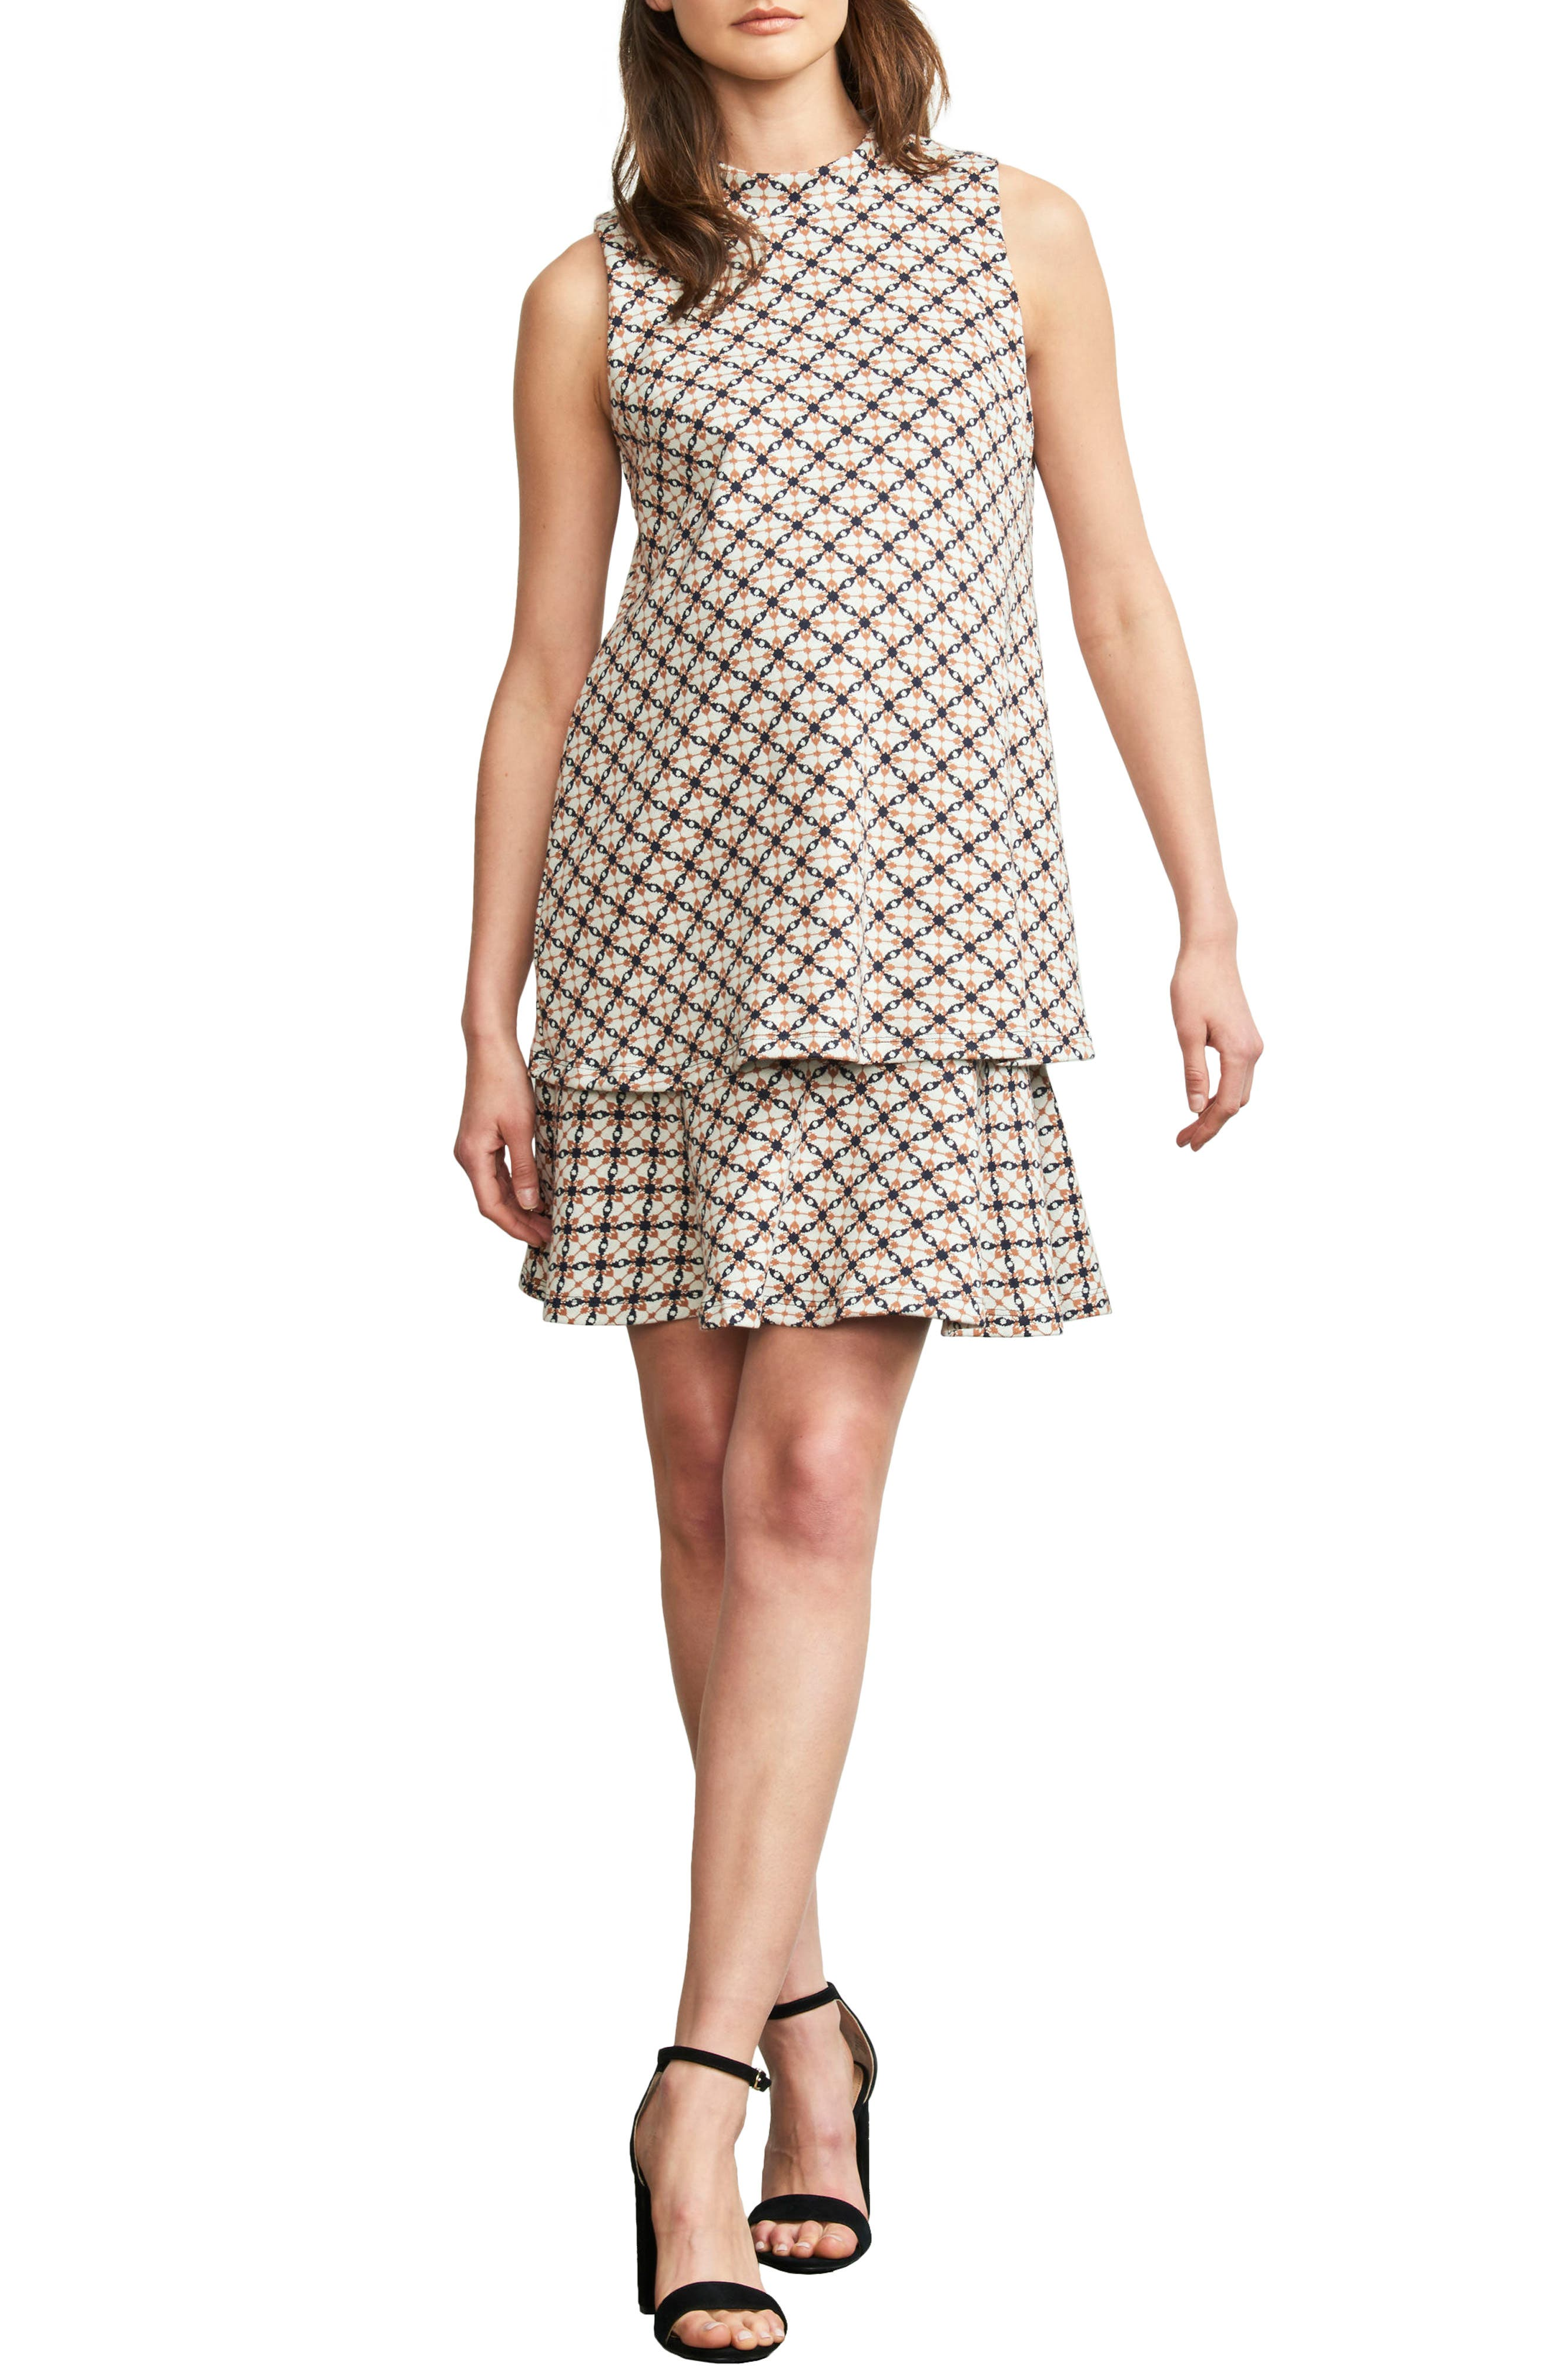 MATERNAL AMERICA 'Lucy' Maternity Dress, Main, color, JACQUARD